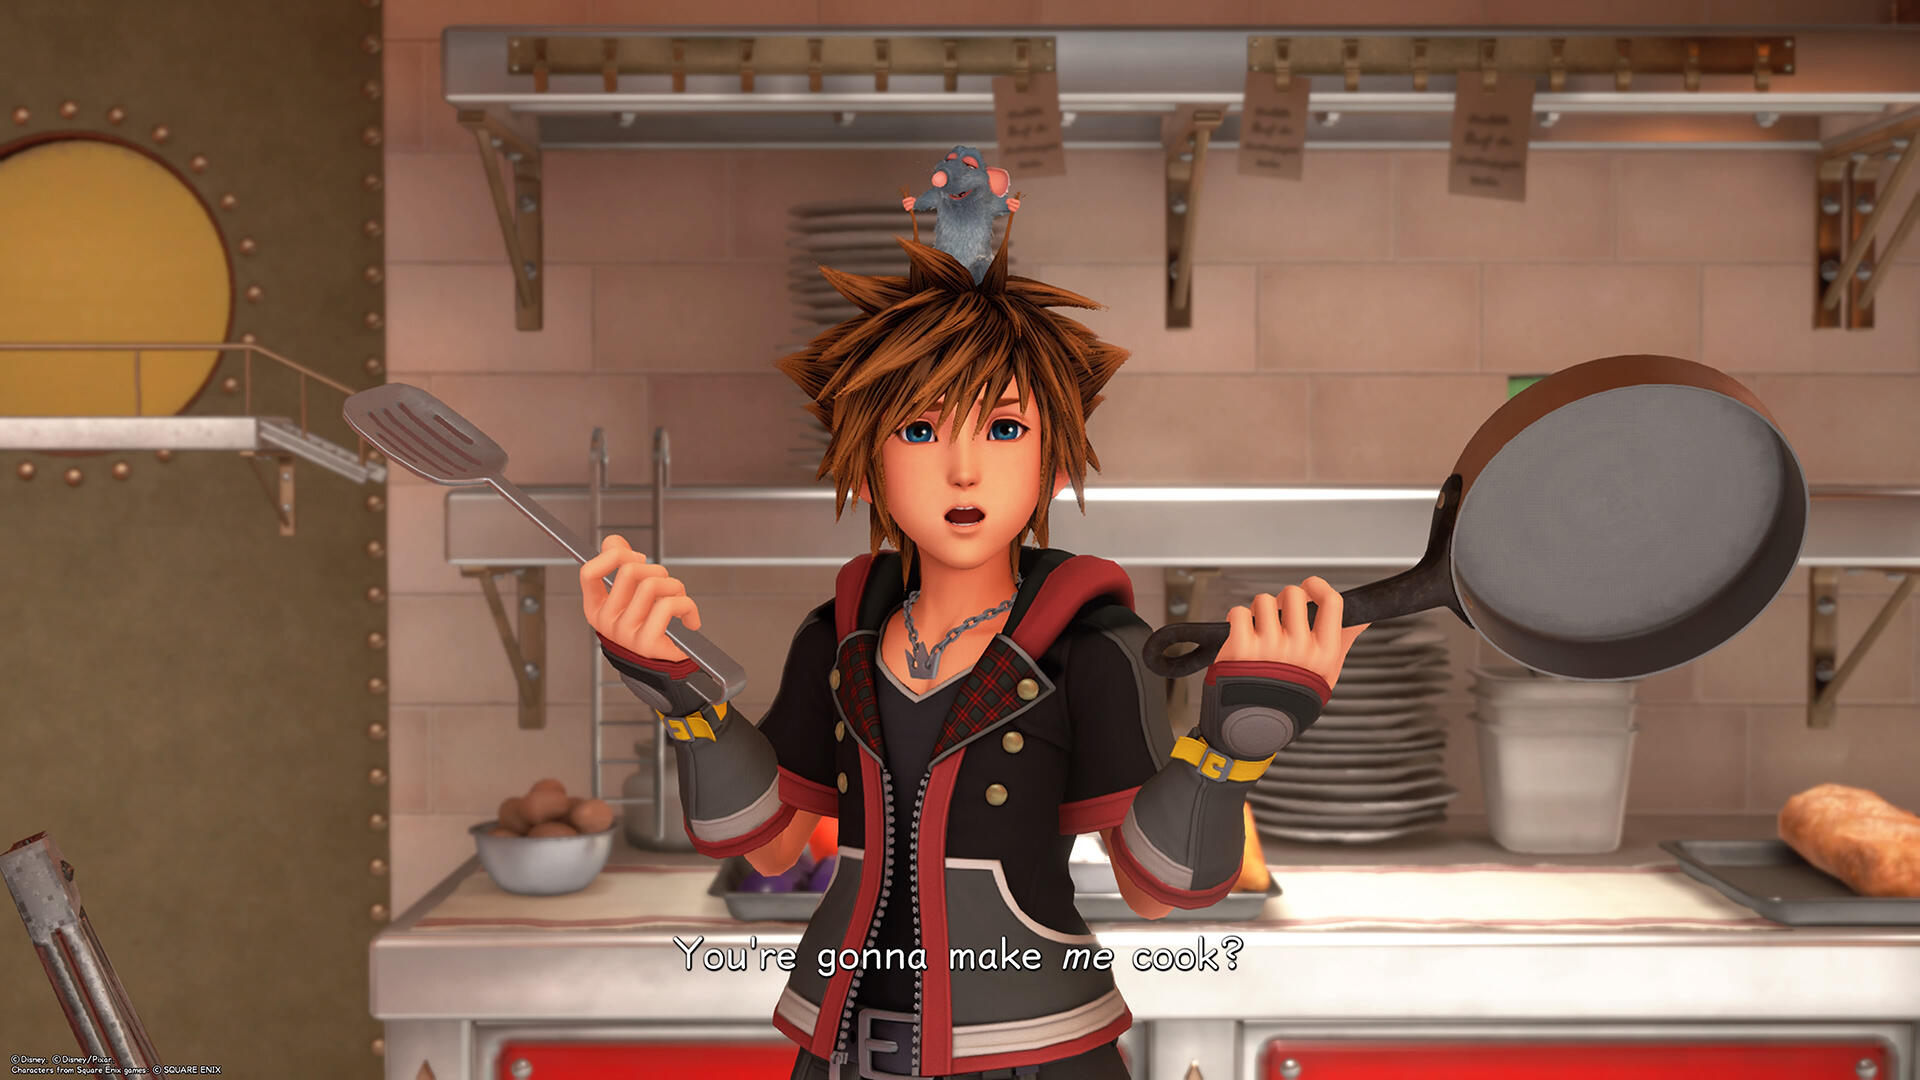 Kingdom Hearts 3 Ingredients Locations, Full Ingredients List, Cooking Recipes